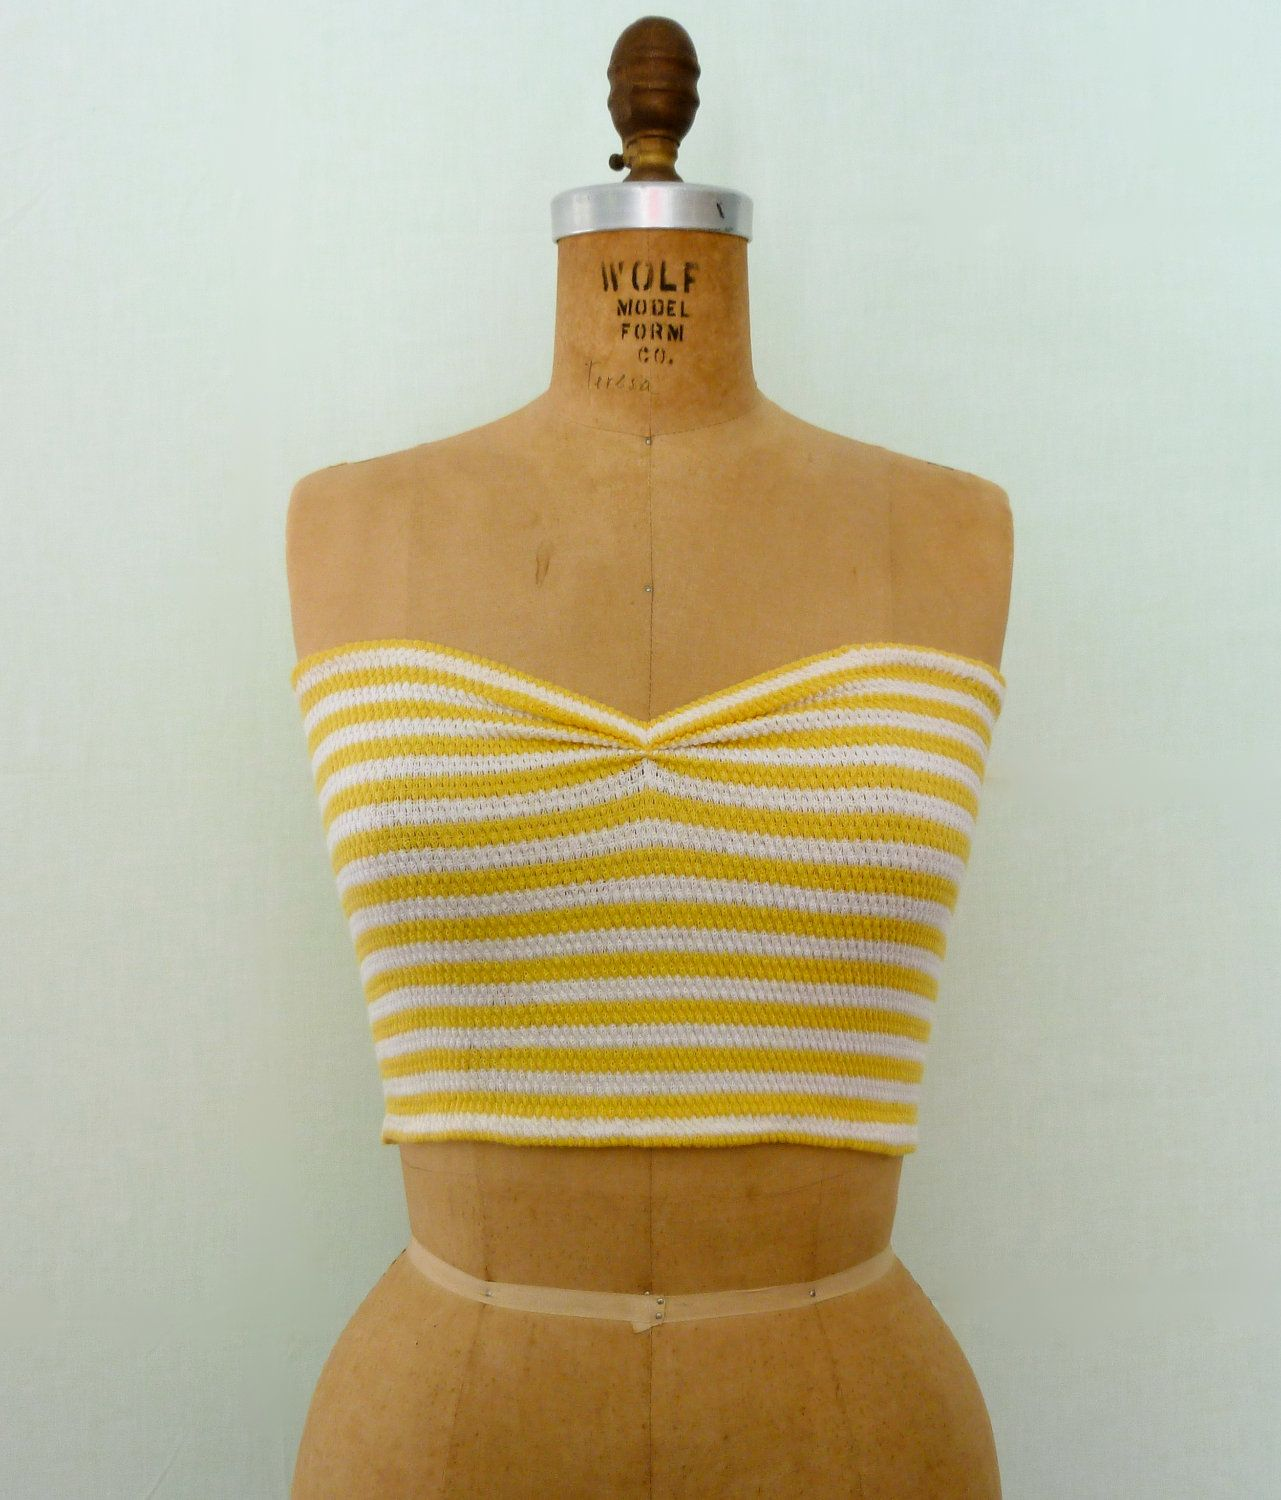 1a8a3636a9b0 70s Yellow Striped Tube Top. My friend Karen and I had at least 20 of these  between us, we were always borrowing each others clothes. Good times!